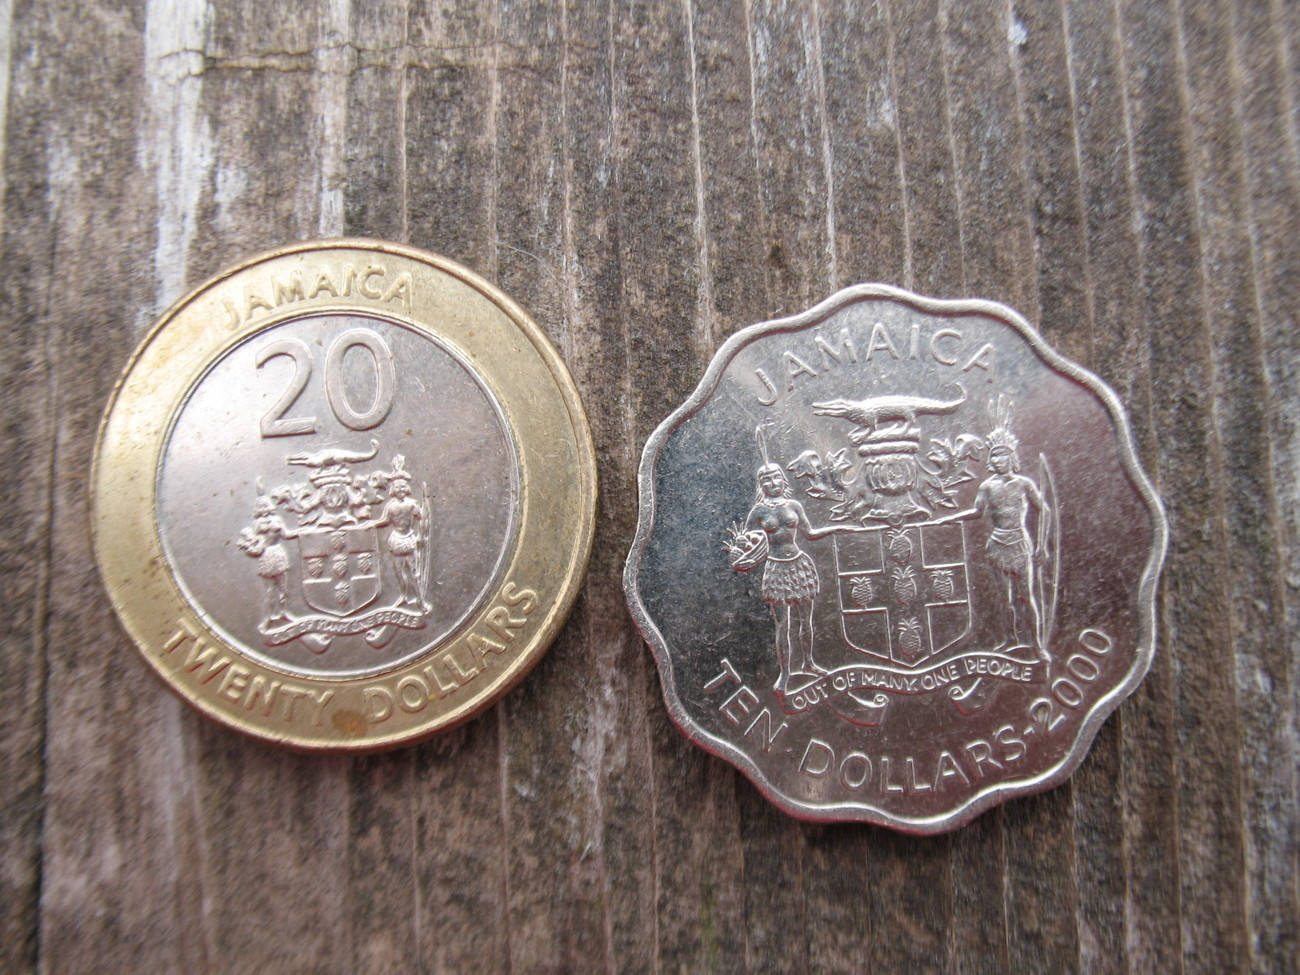 Jamaica Ten and Twenty Dollar Coin 2000 and 2001